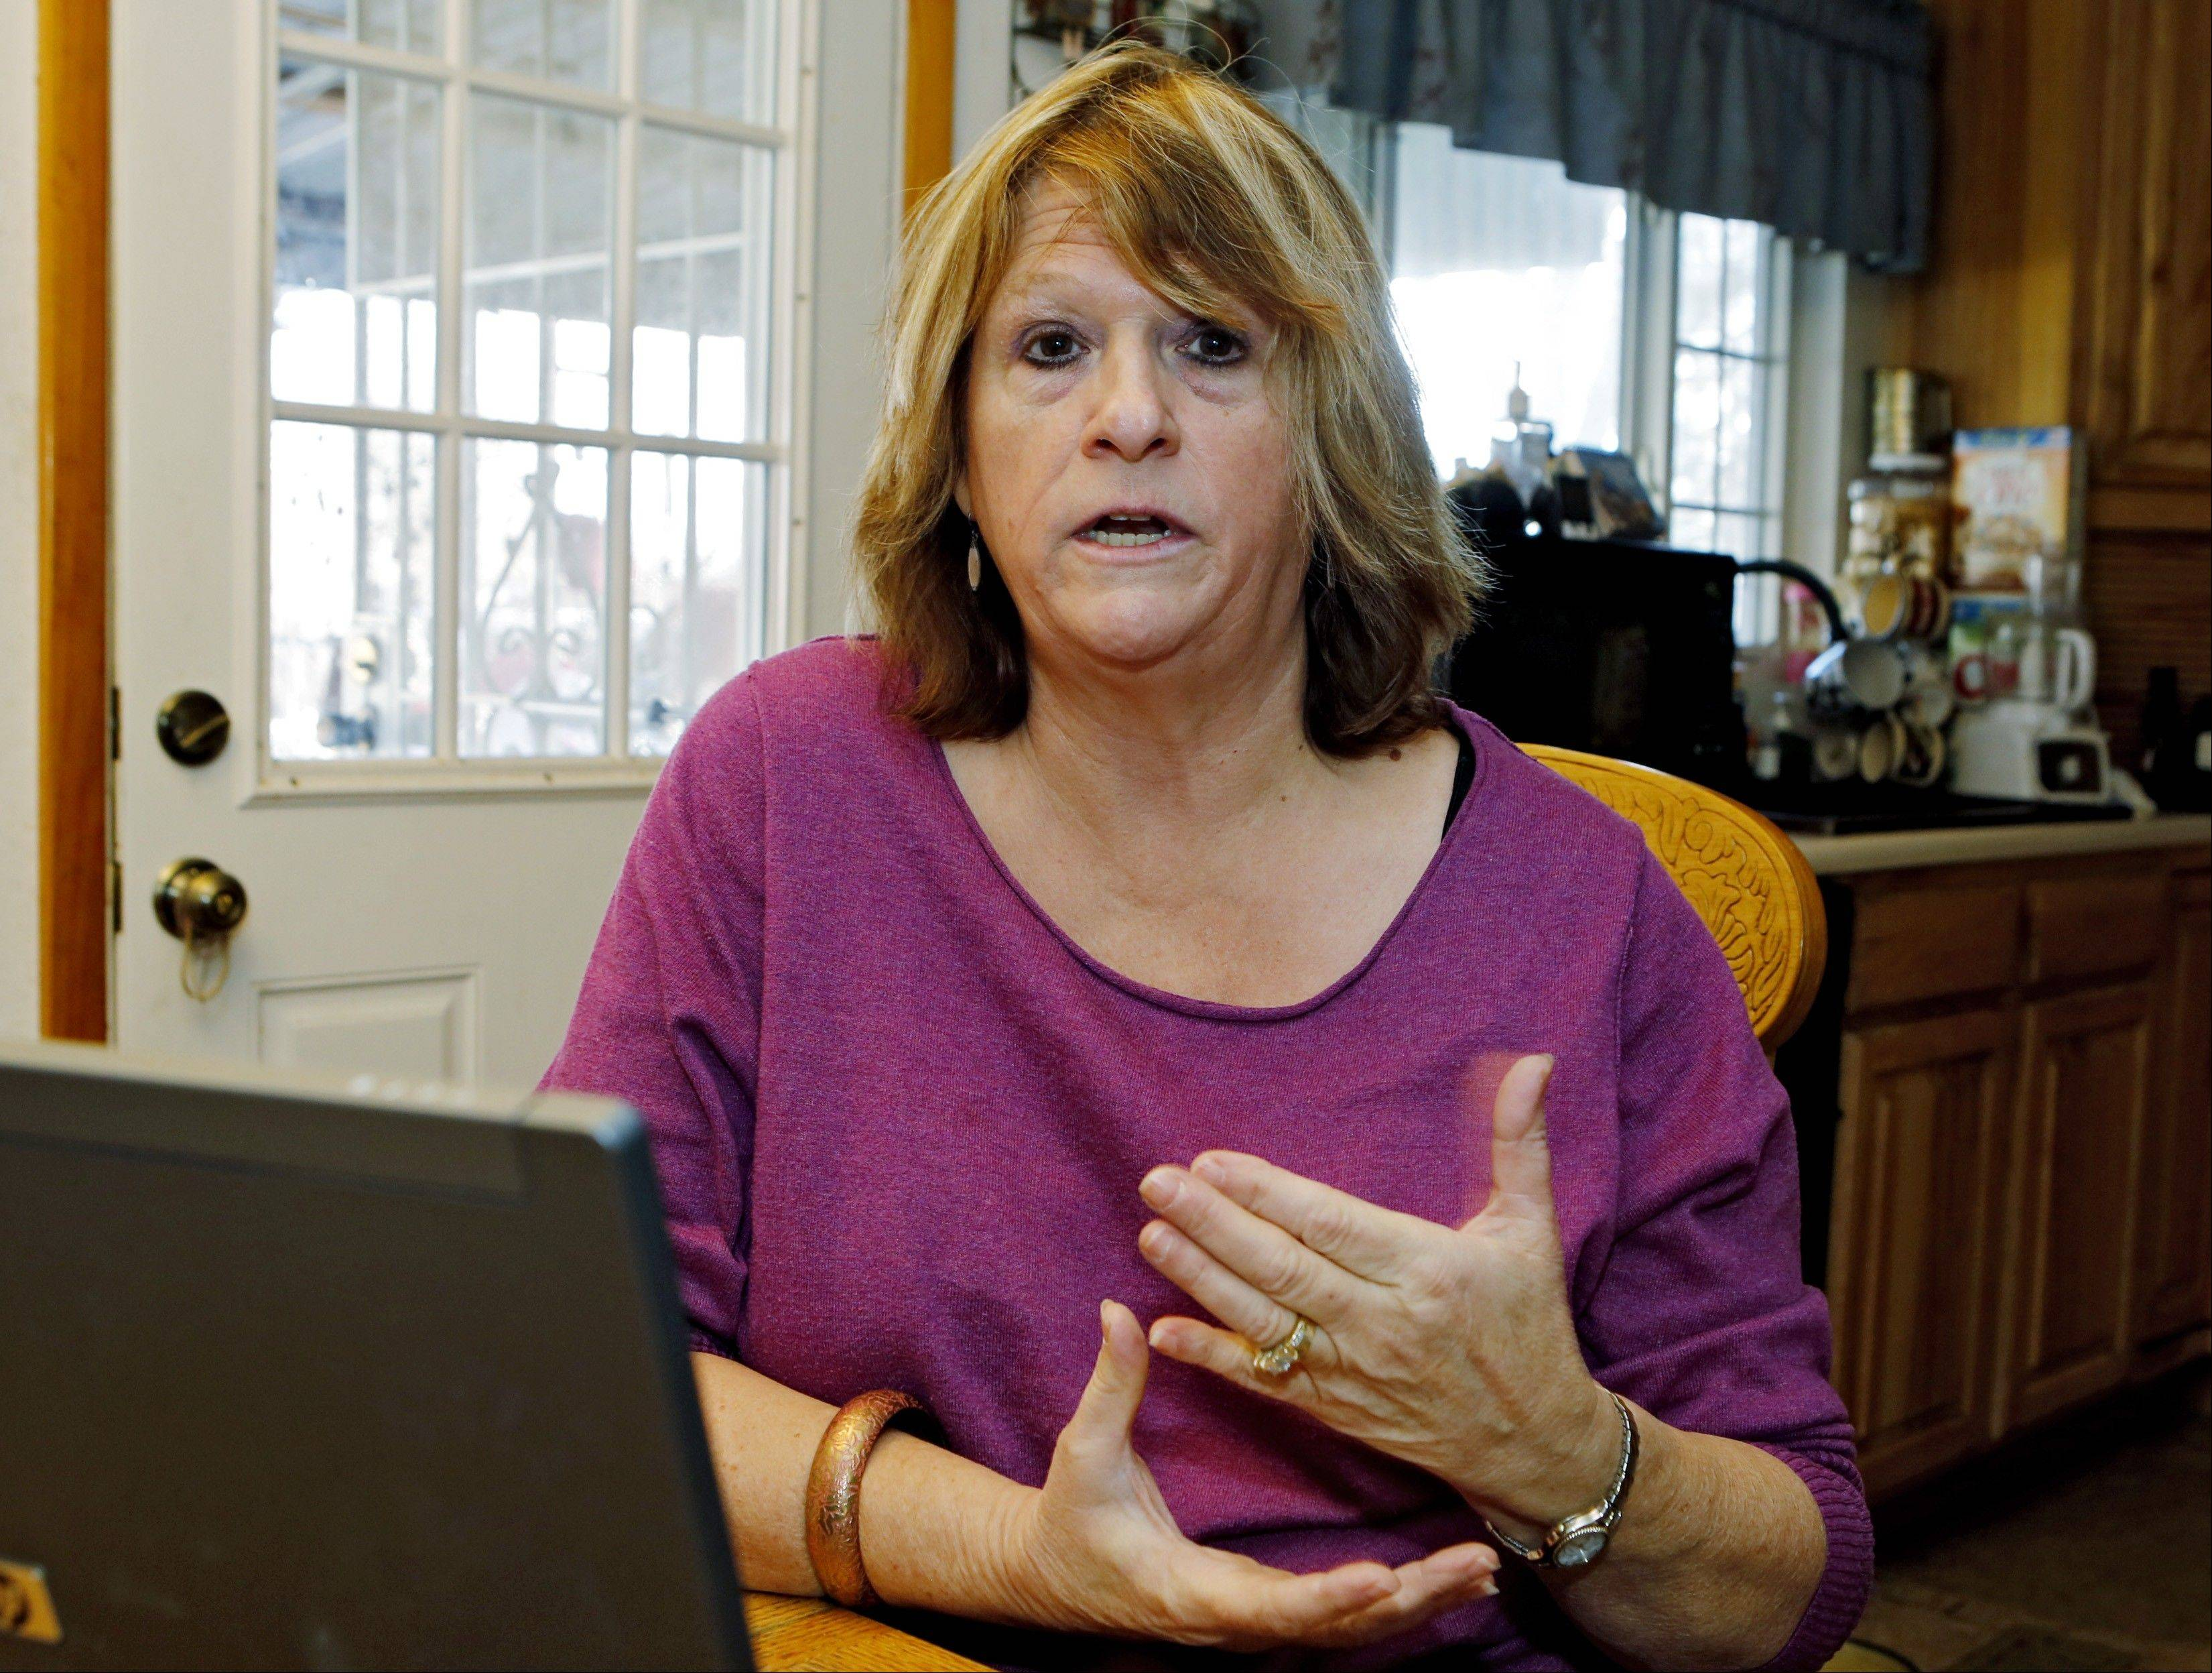 Nita Ness, 58, talks about her unemployment status at her home in Colorado Springs, Colo. Ness, who lost her job as a civilian contractor at Peterson Air Force Base in August 2012 and just received her final check from the unemployment office. She said �I�m registered as a Republican, but if they continue to use this not extending our [aid] I�m probably changing to Democrat.�